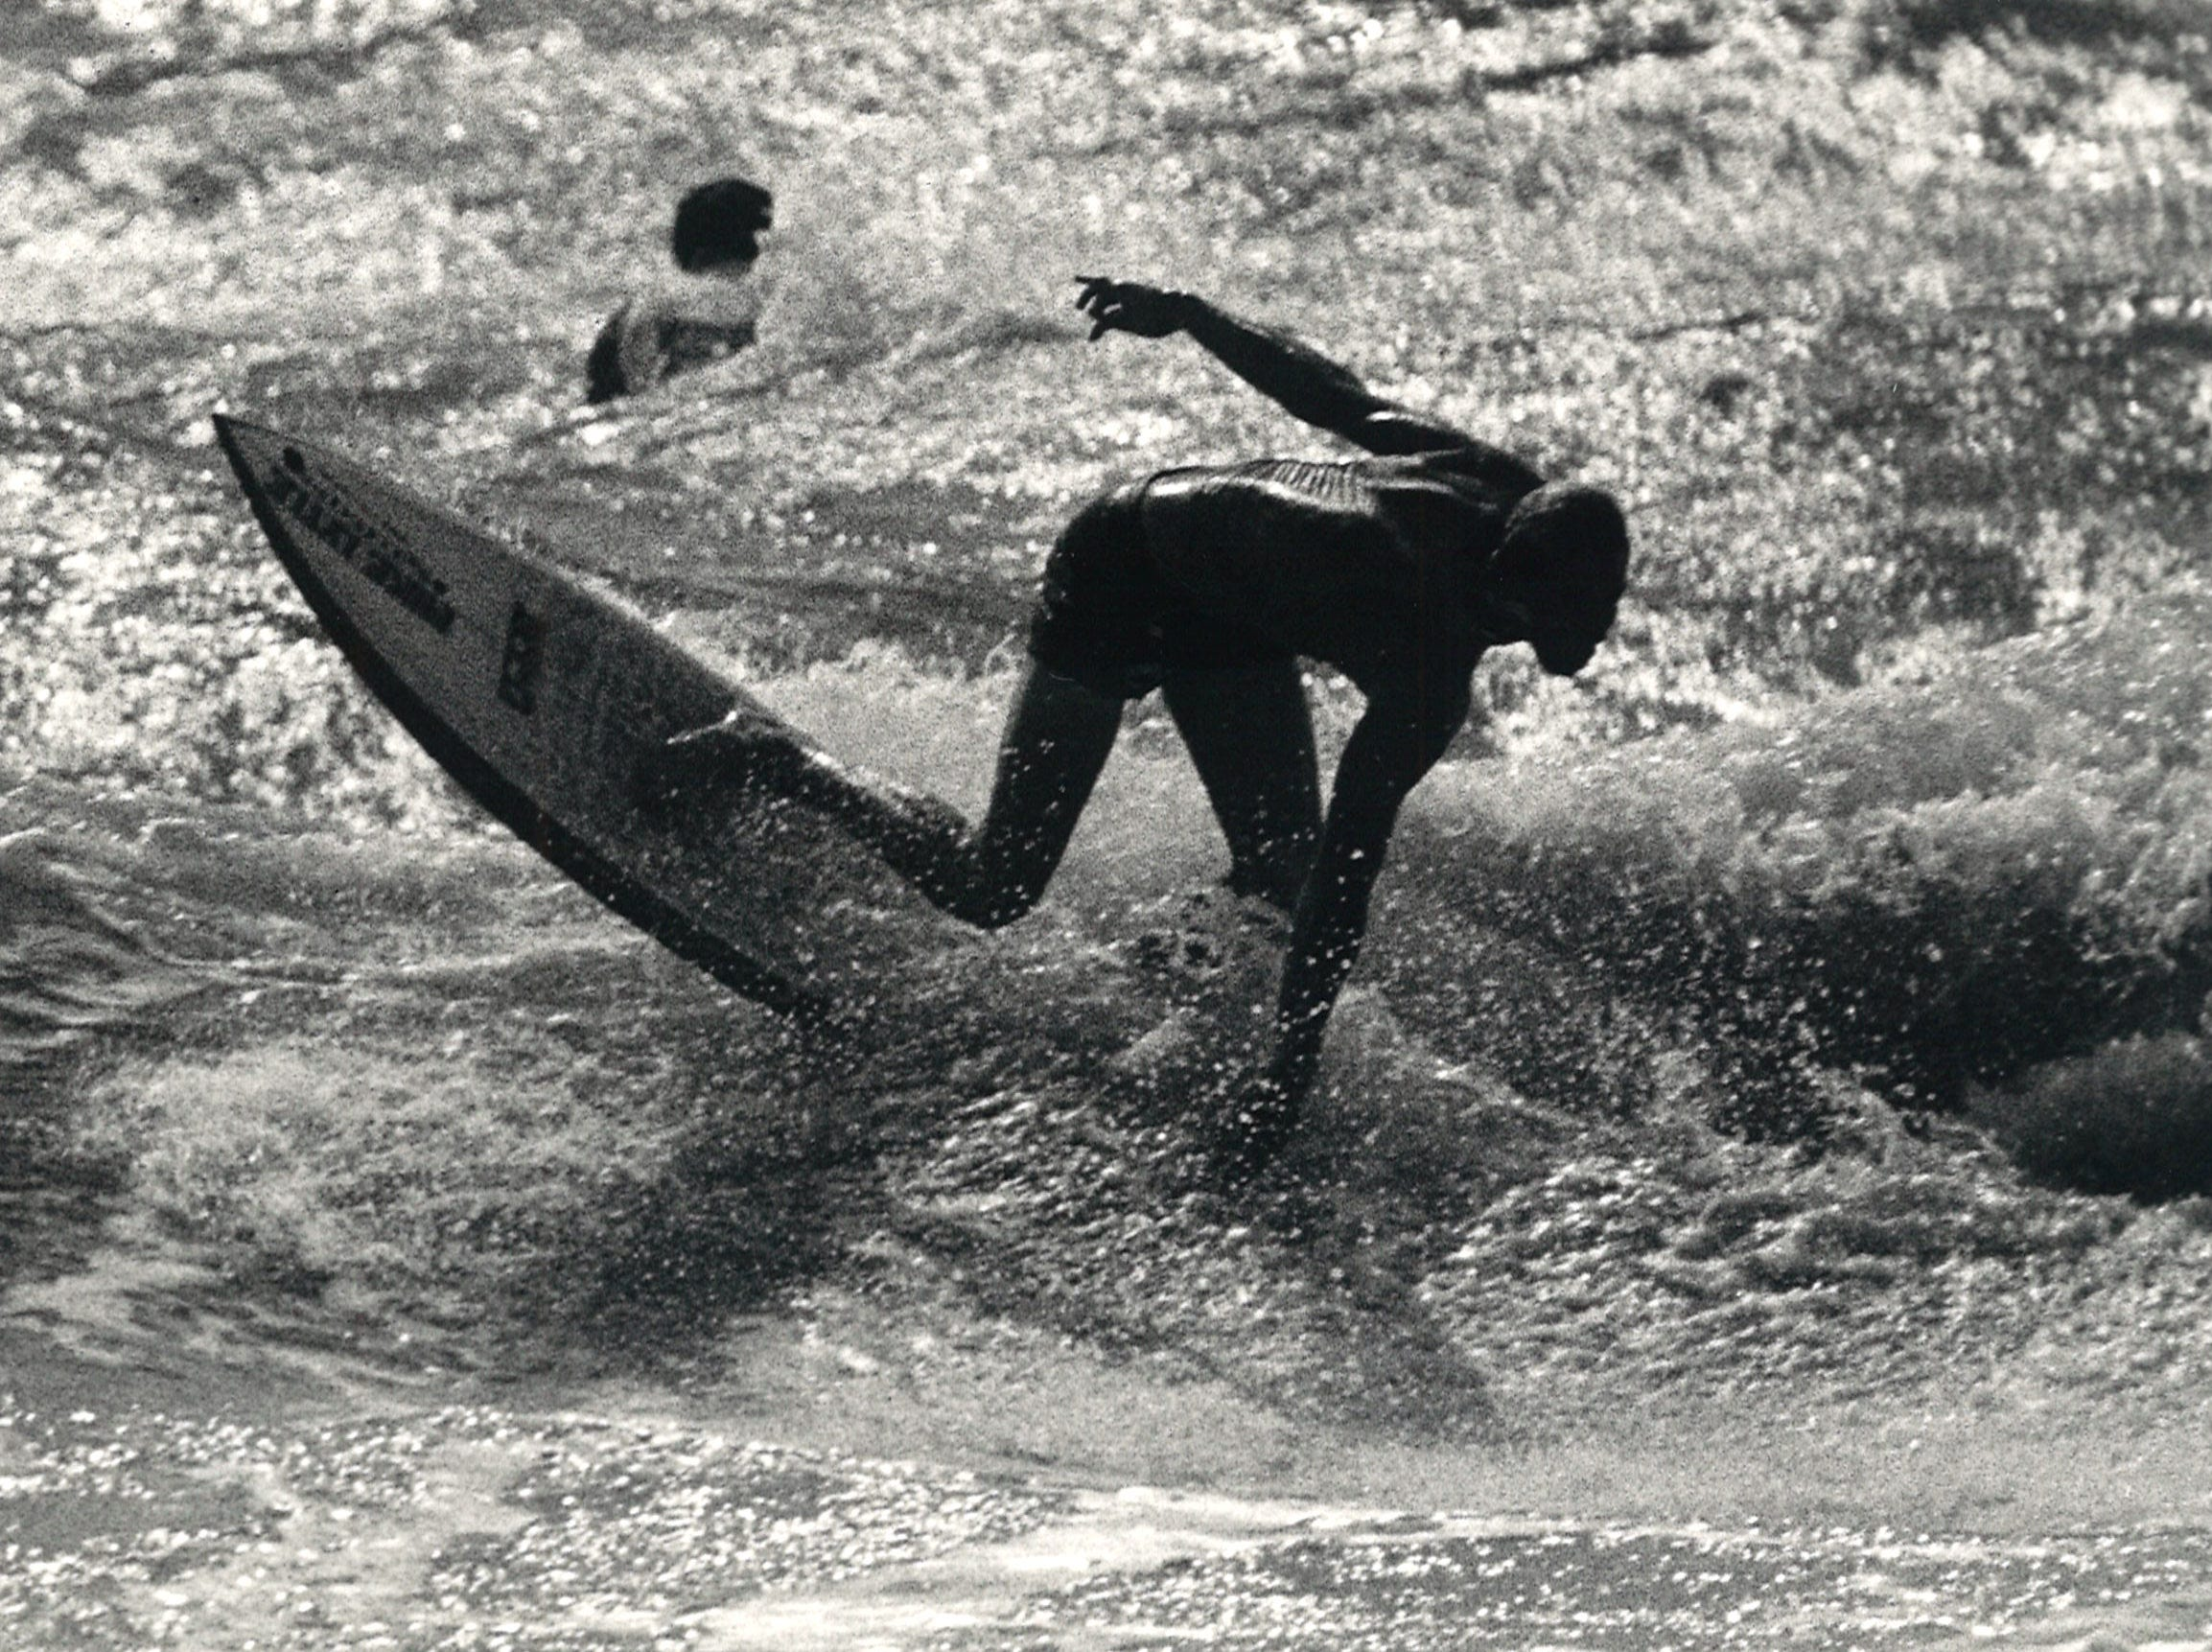 A surfer whipped through a radical cutback during the Off Shore Texas Pro Am Surfing Classic at J.P. Luby Surf Park in Corpus Christi on April 4, 1985.